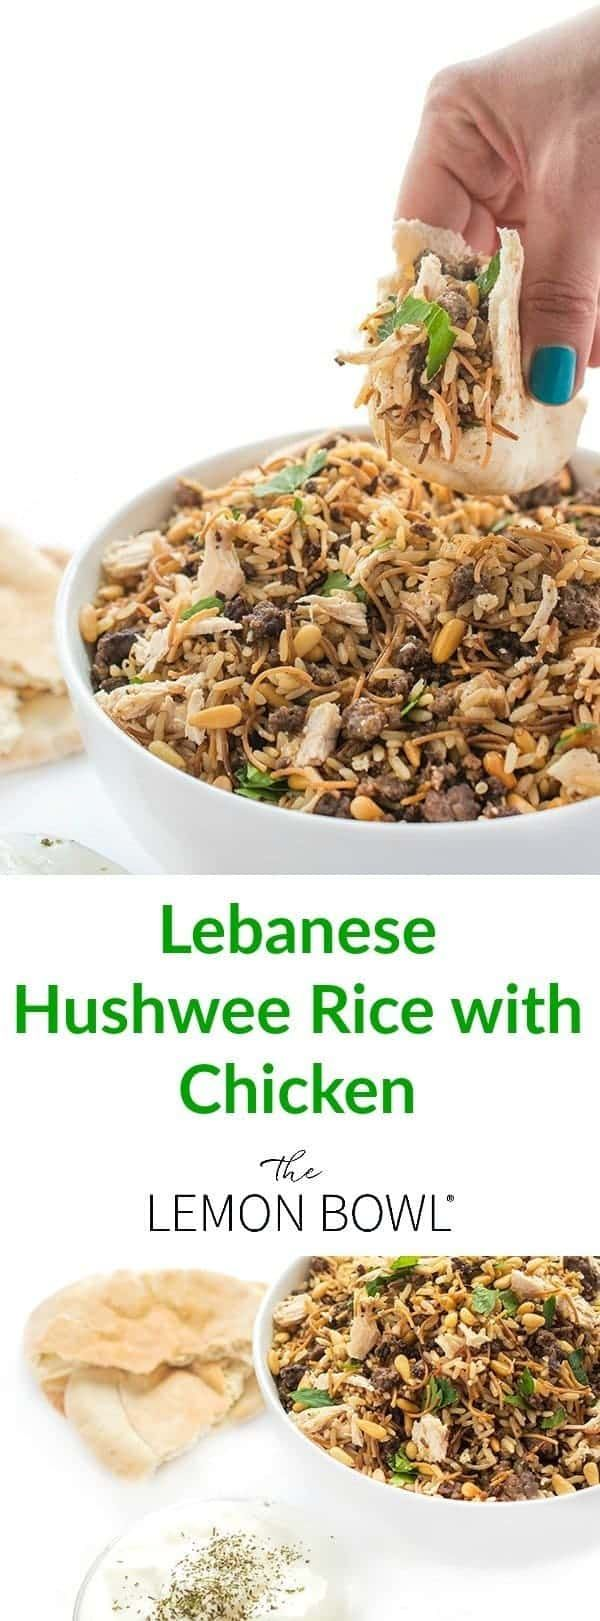 Lebanese Hushwee Rice with Chicken - The Lemon Bowl® #seasonedricerecipes